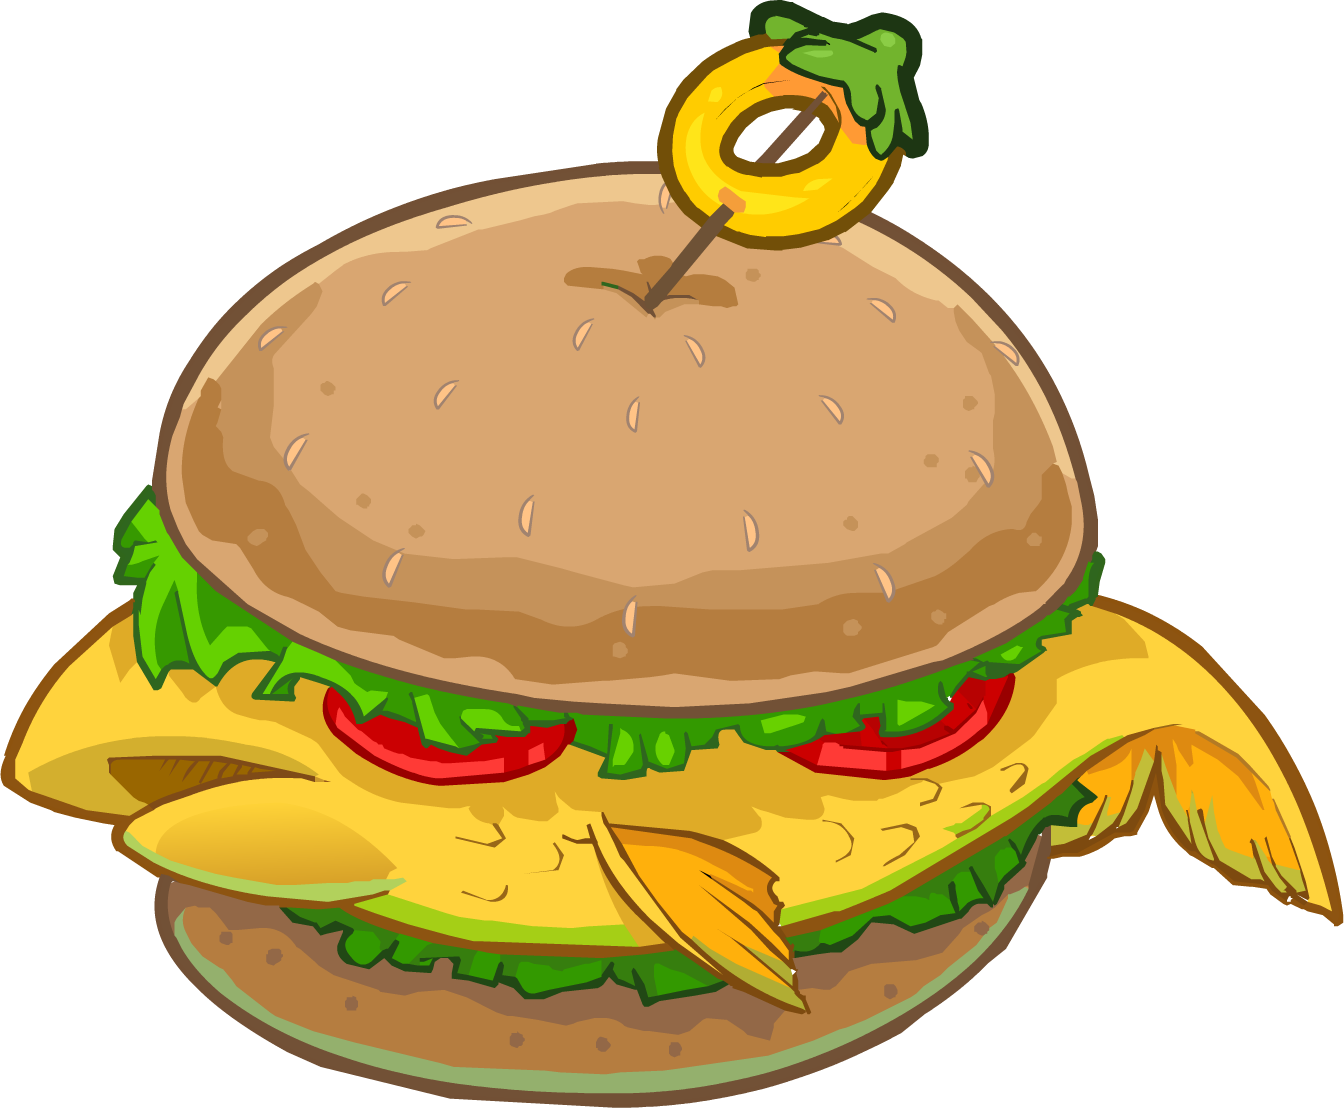 Fish sandwich clipart jpg black and white download Burger clipart fish FREE for download on rpelm jpg black and white download